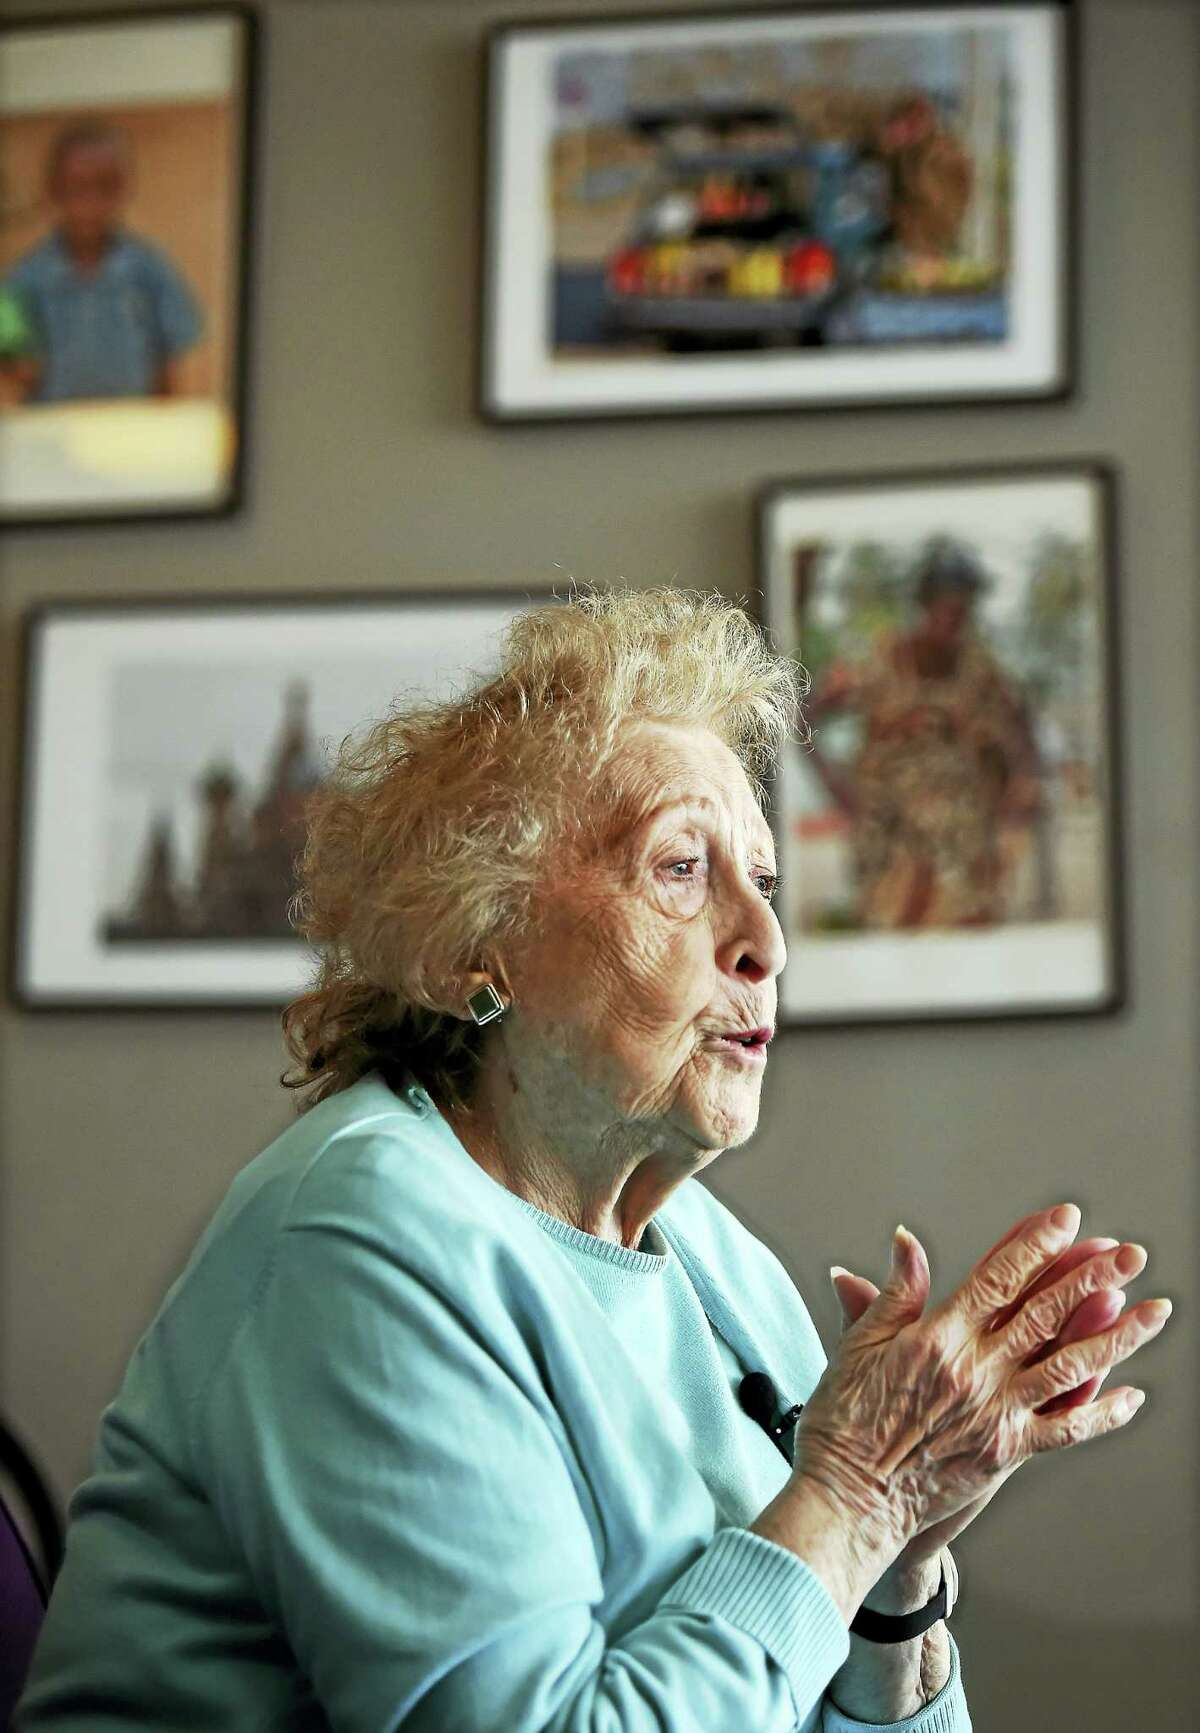 Holocaust survivor Hannah Kuperstoch of Hamden tells of her experience of living as a young Jewish girl in Poland during World War II to students at the John C. Daniels School of International Communication in New Haven Wednesday.